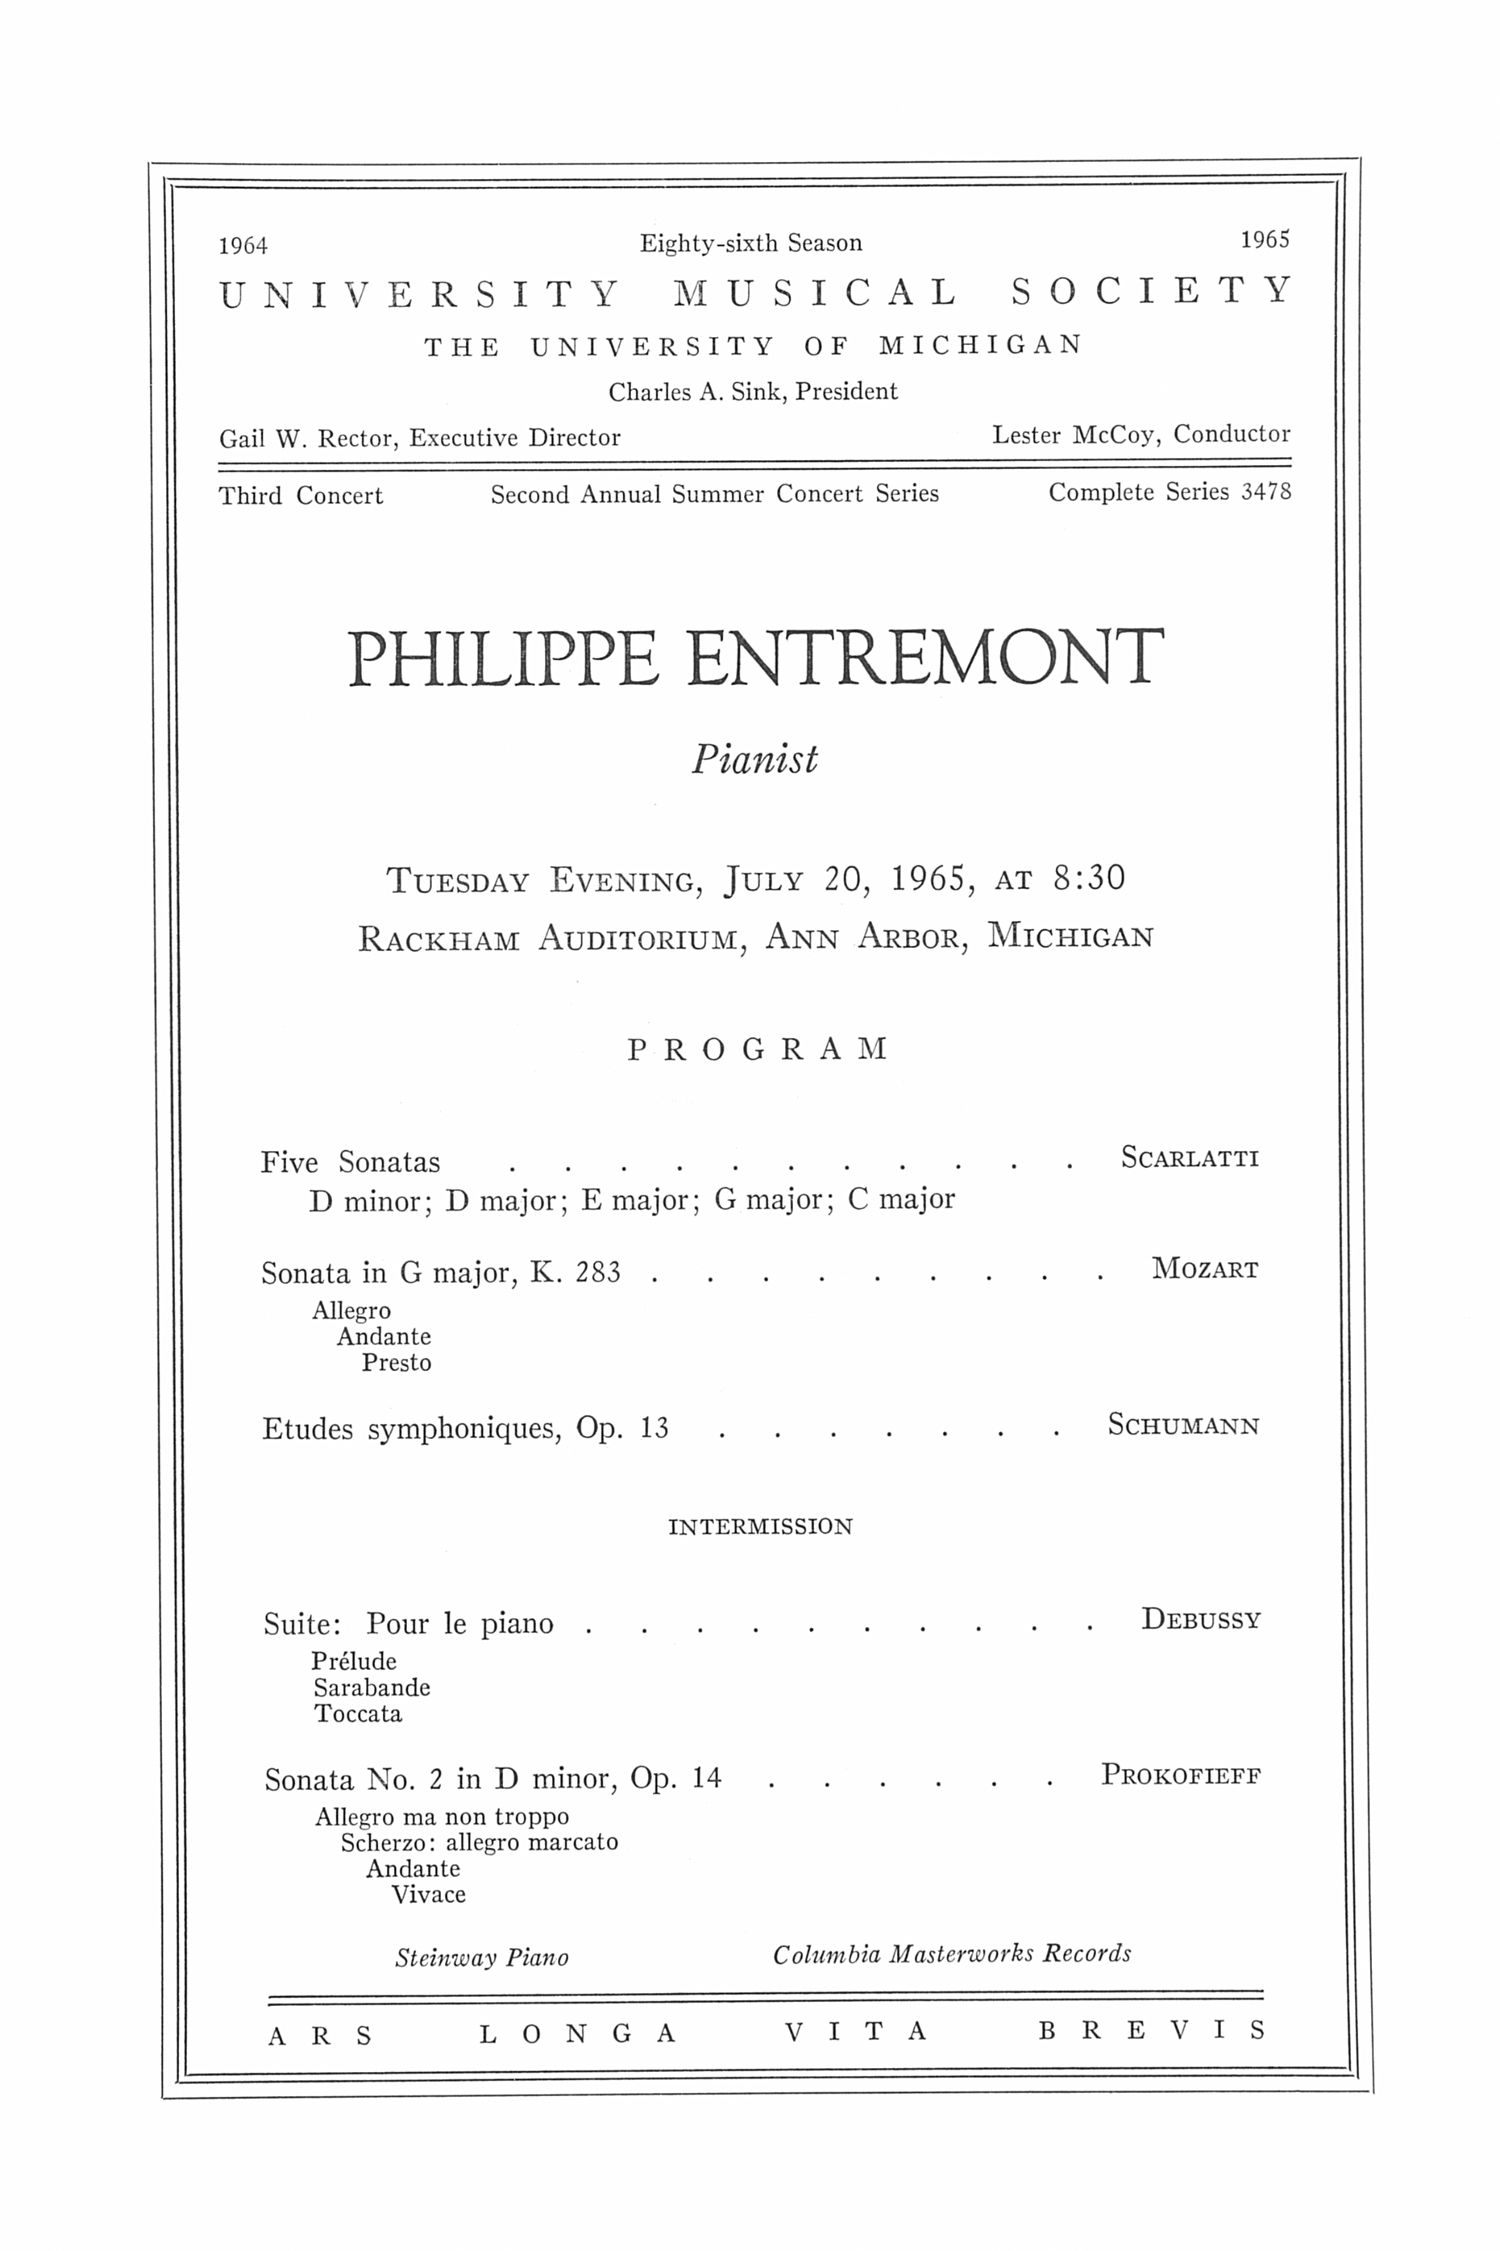 UMS Concert Program, July 20, 1965: Philippe Entremont --  image